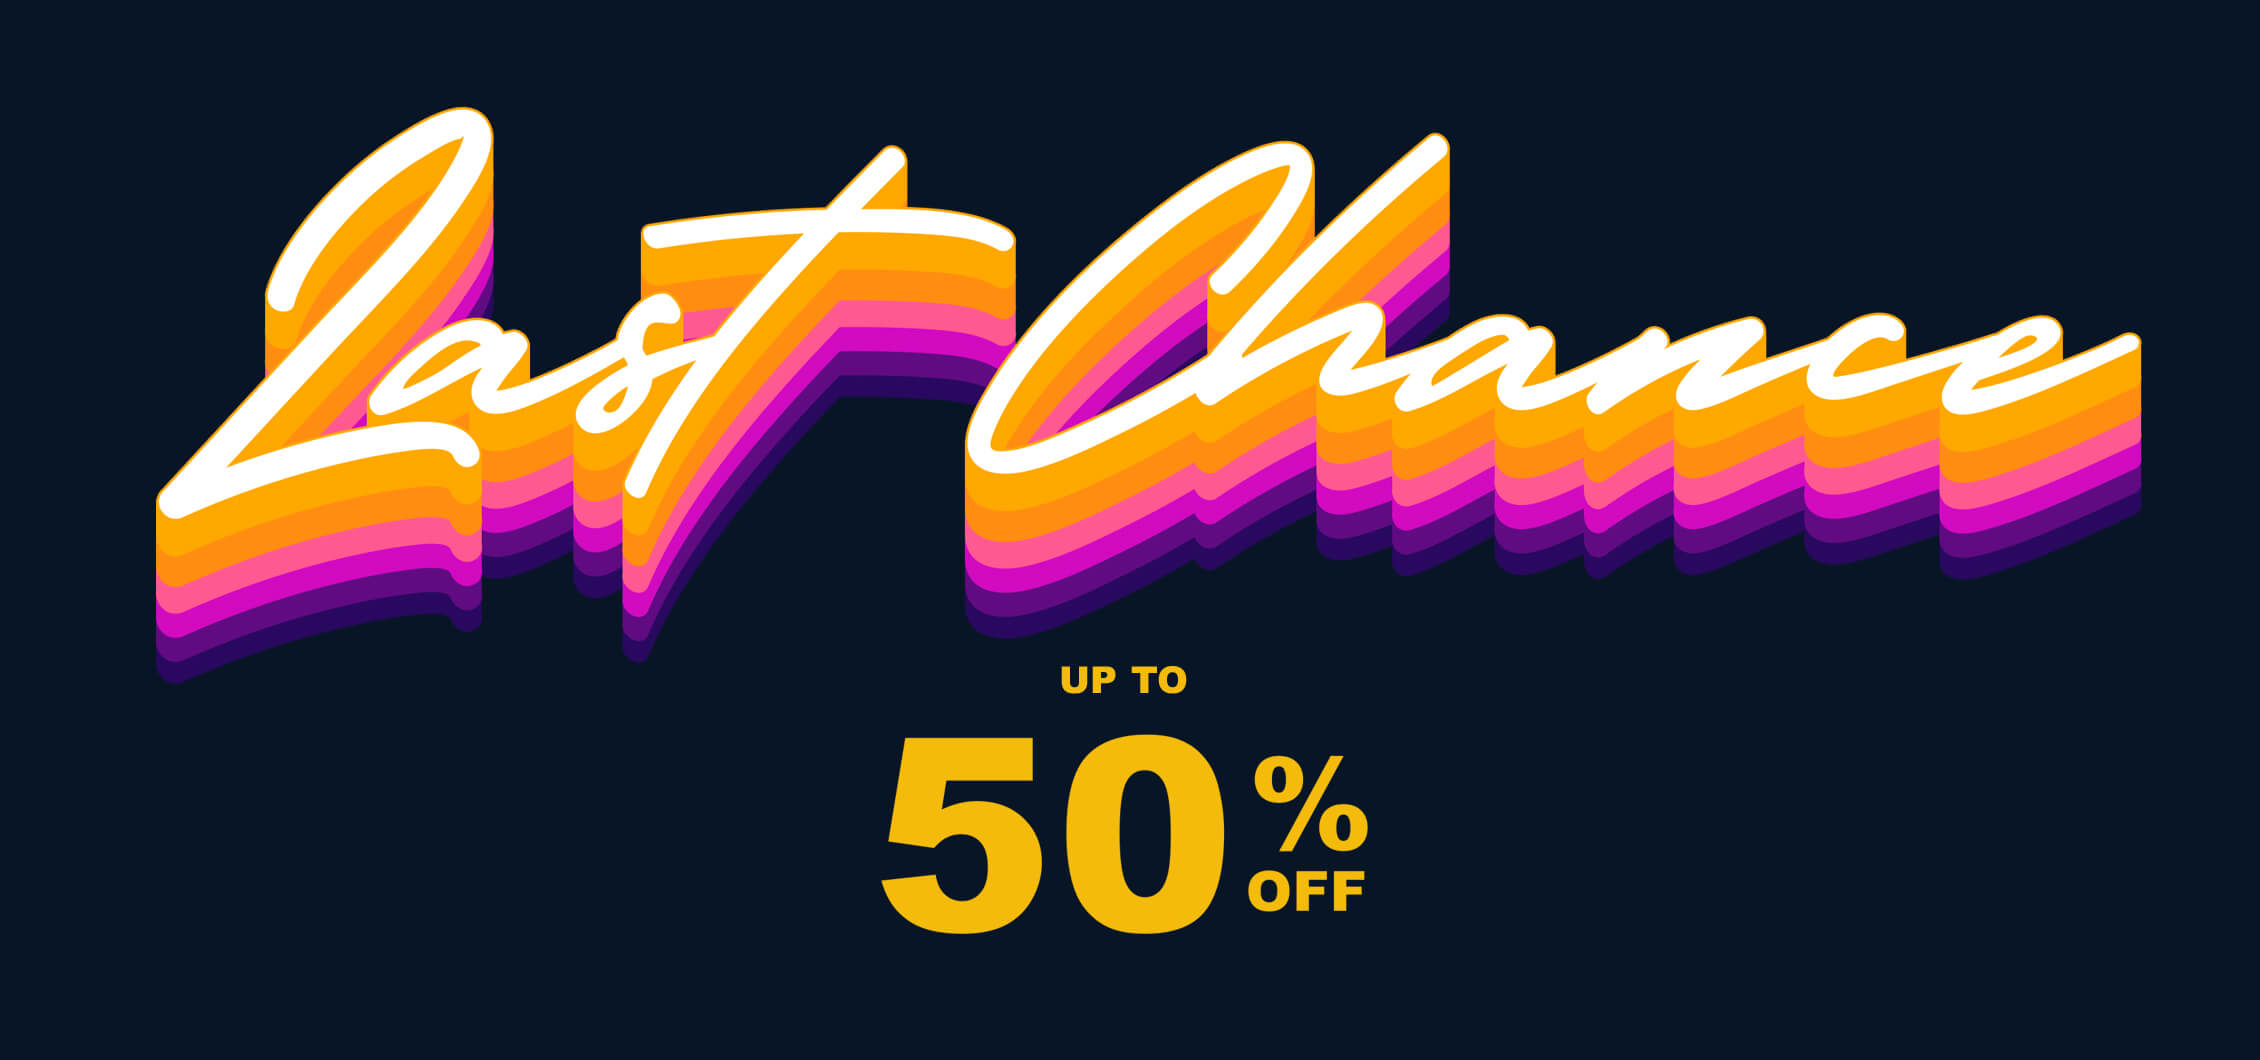 Last Chance up to 50% off